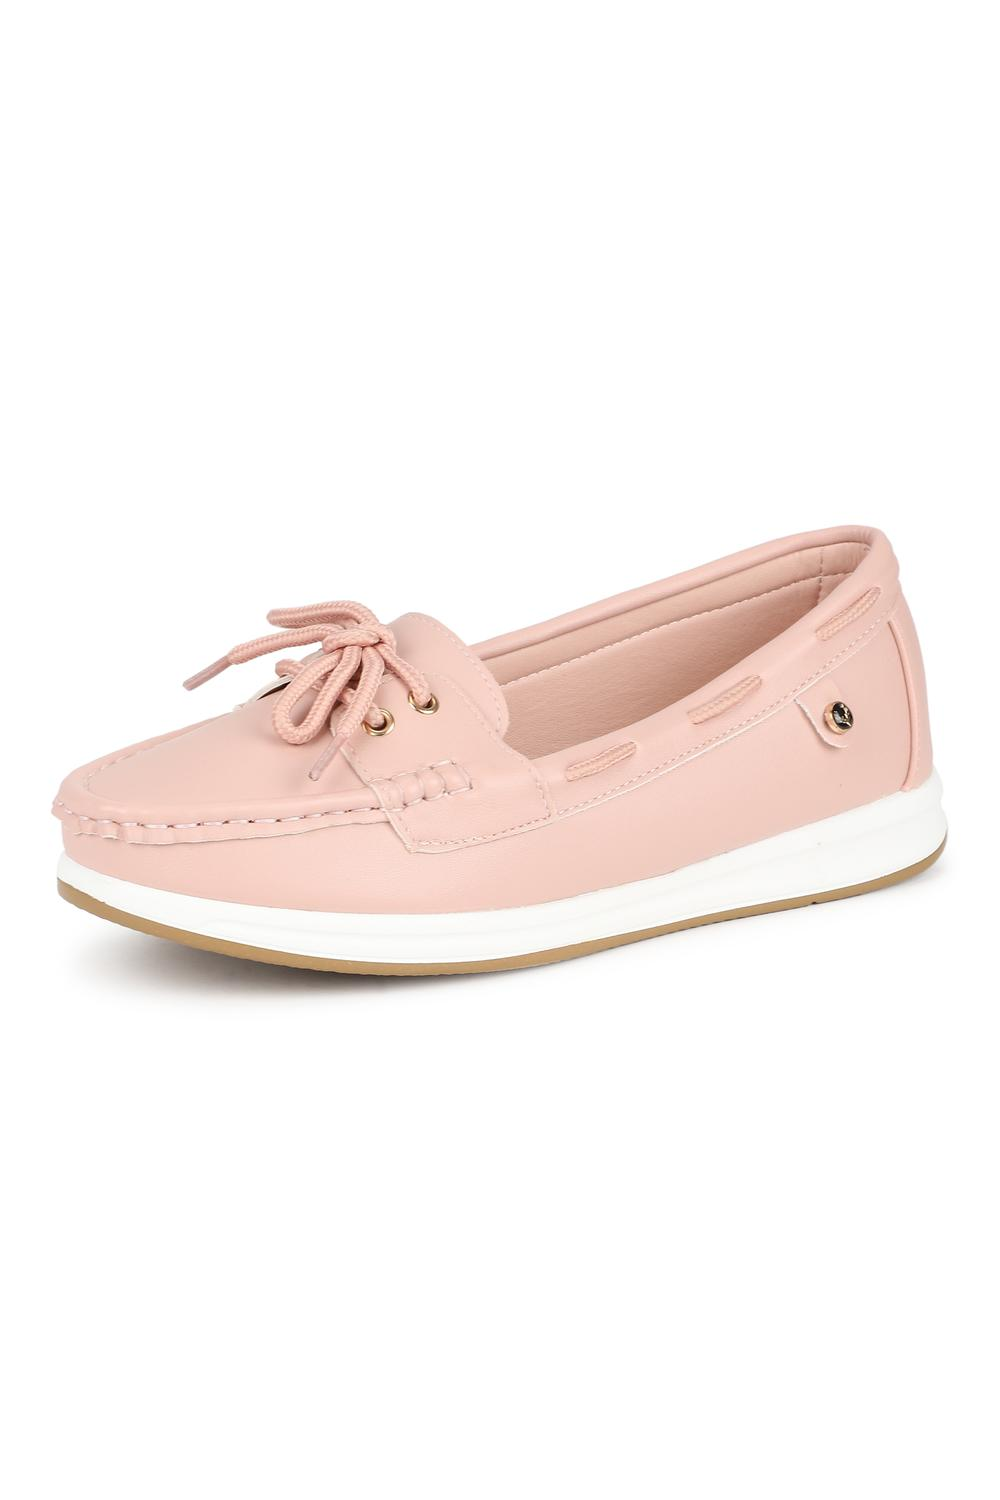 Allen Solly Pink Loafers